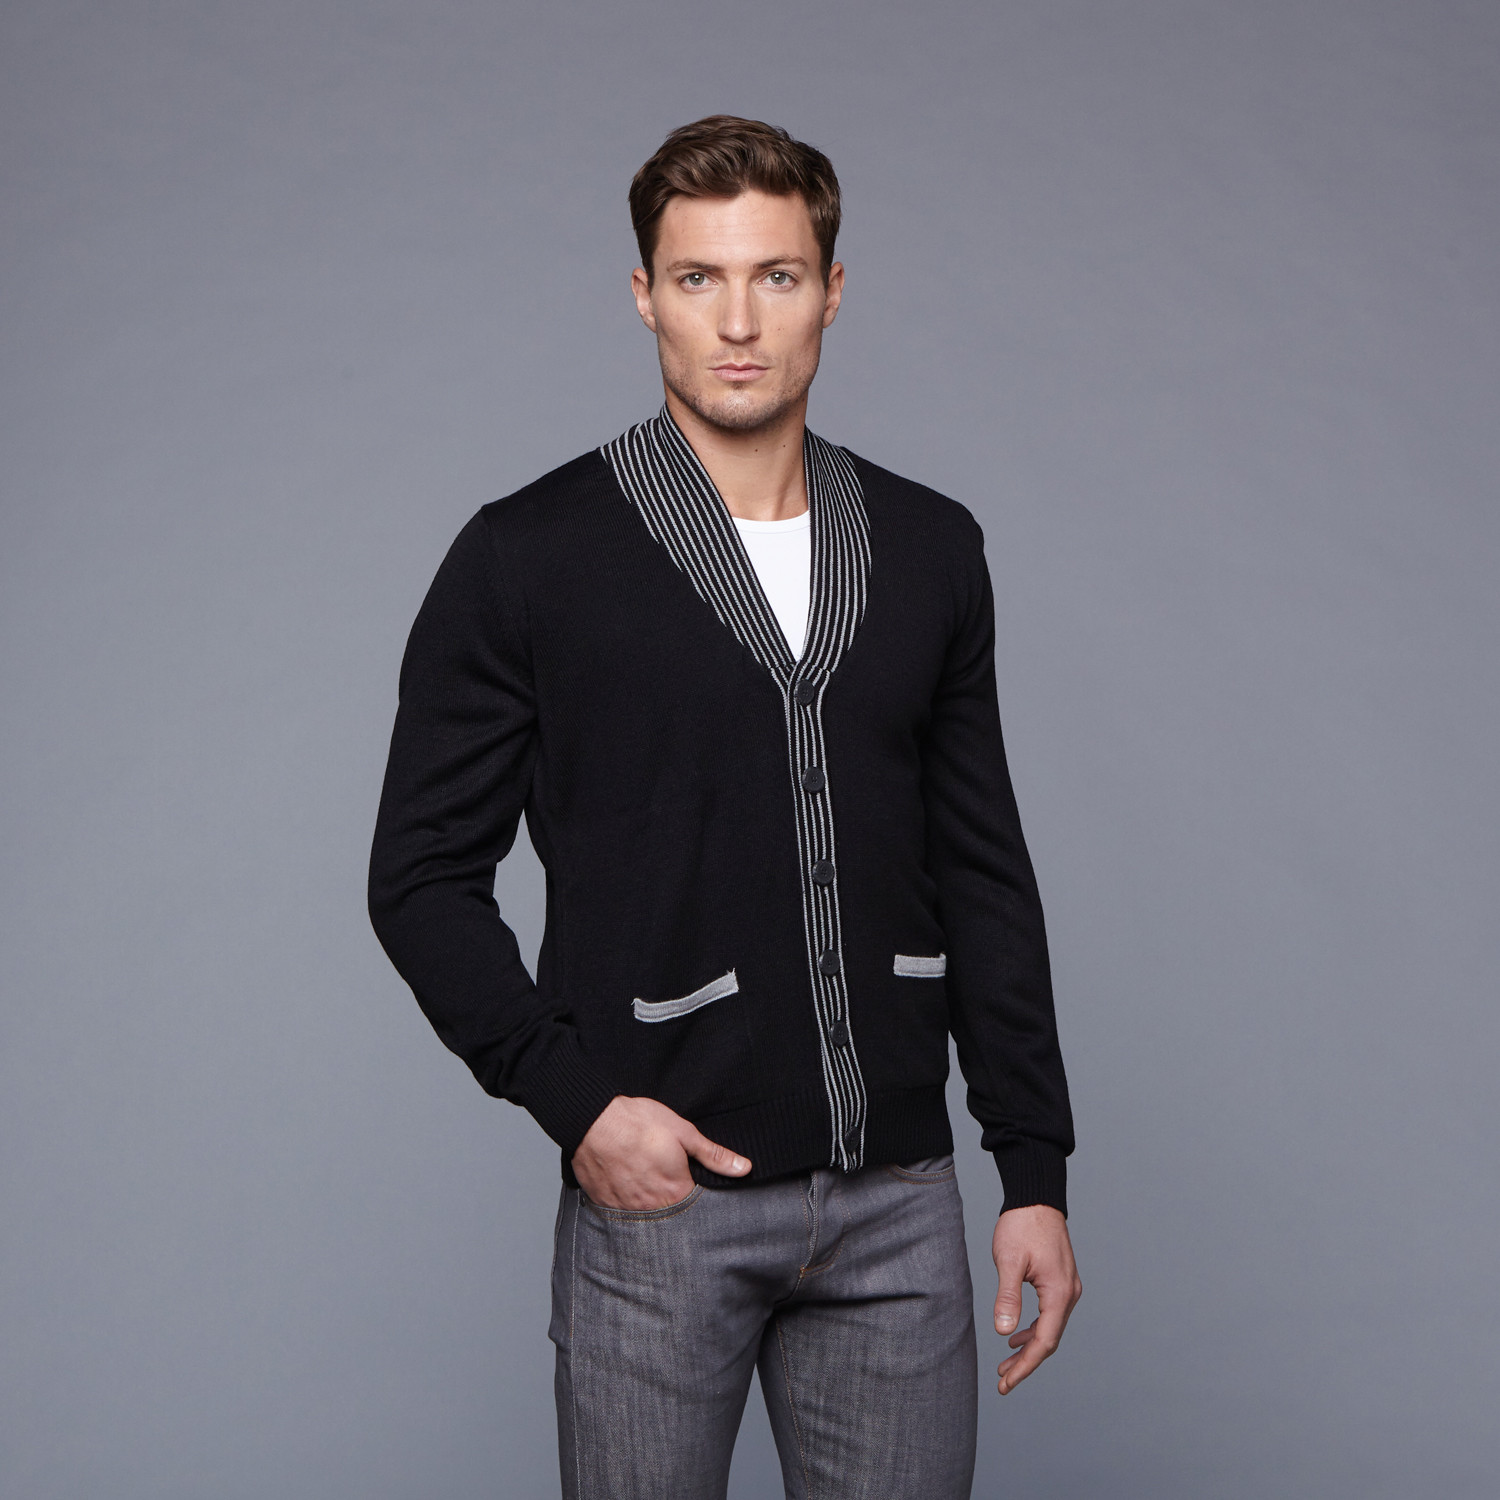 how to dress stylishly men – preppy style cardigan 2 | The Monsieur